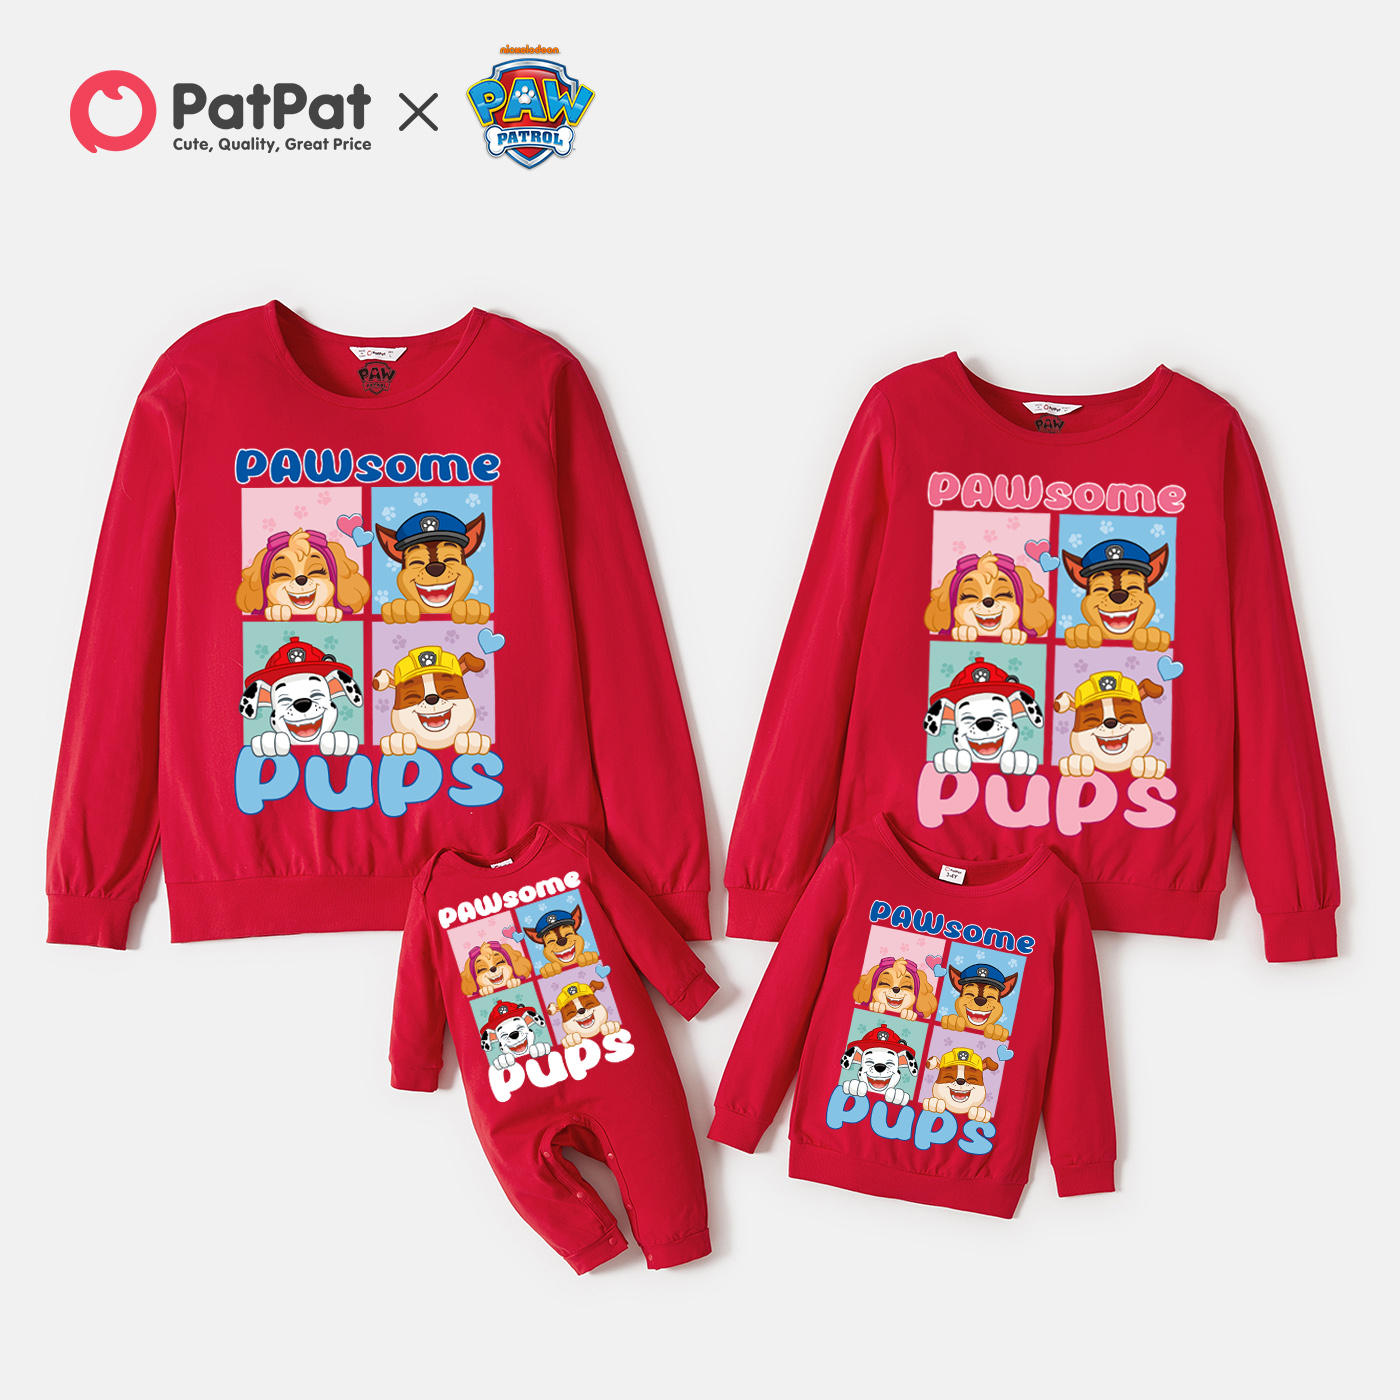 PAW Patrol Cotton Pups Team Graphic Family Matching Pullover Sweatshirts